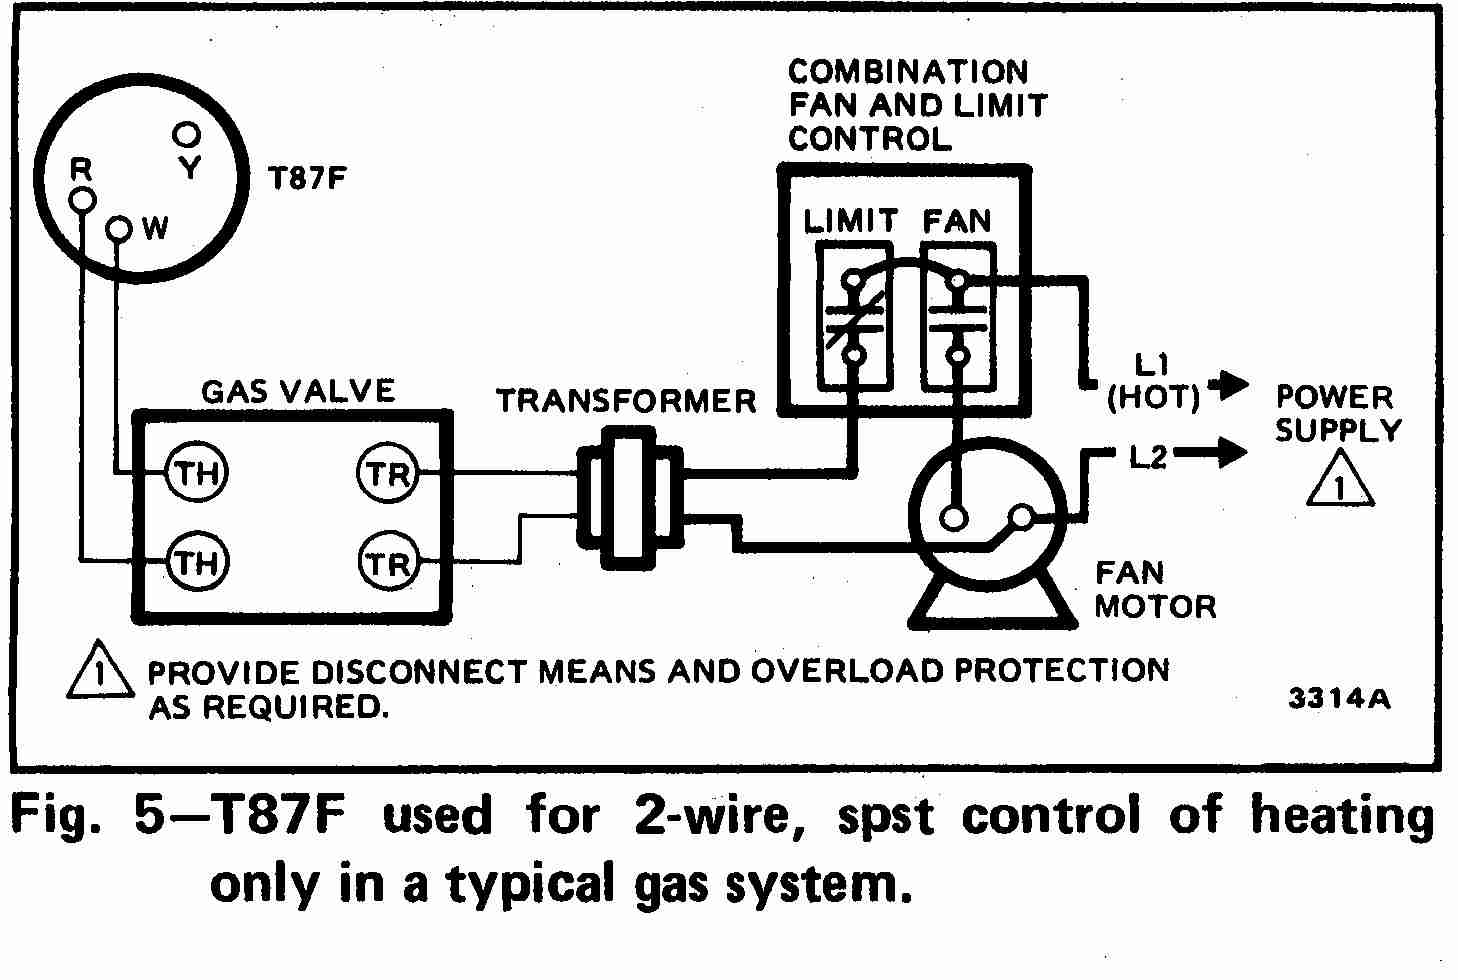 Guide to wiring connections for room thermostats on